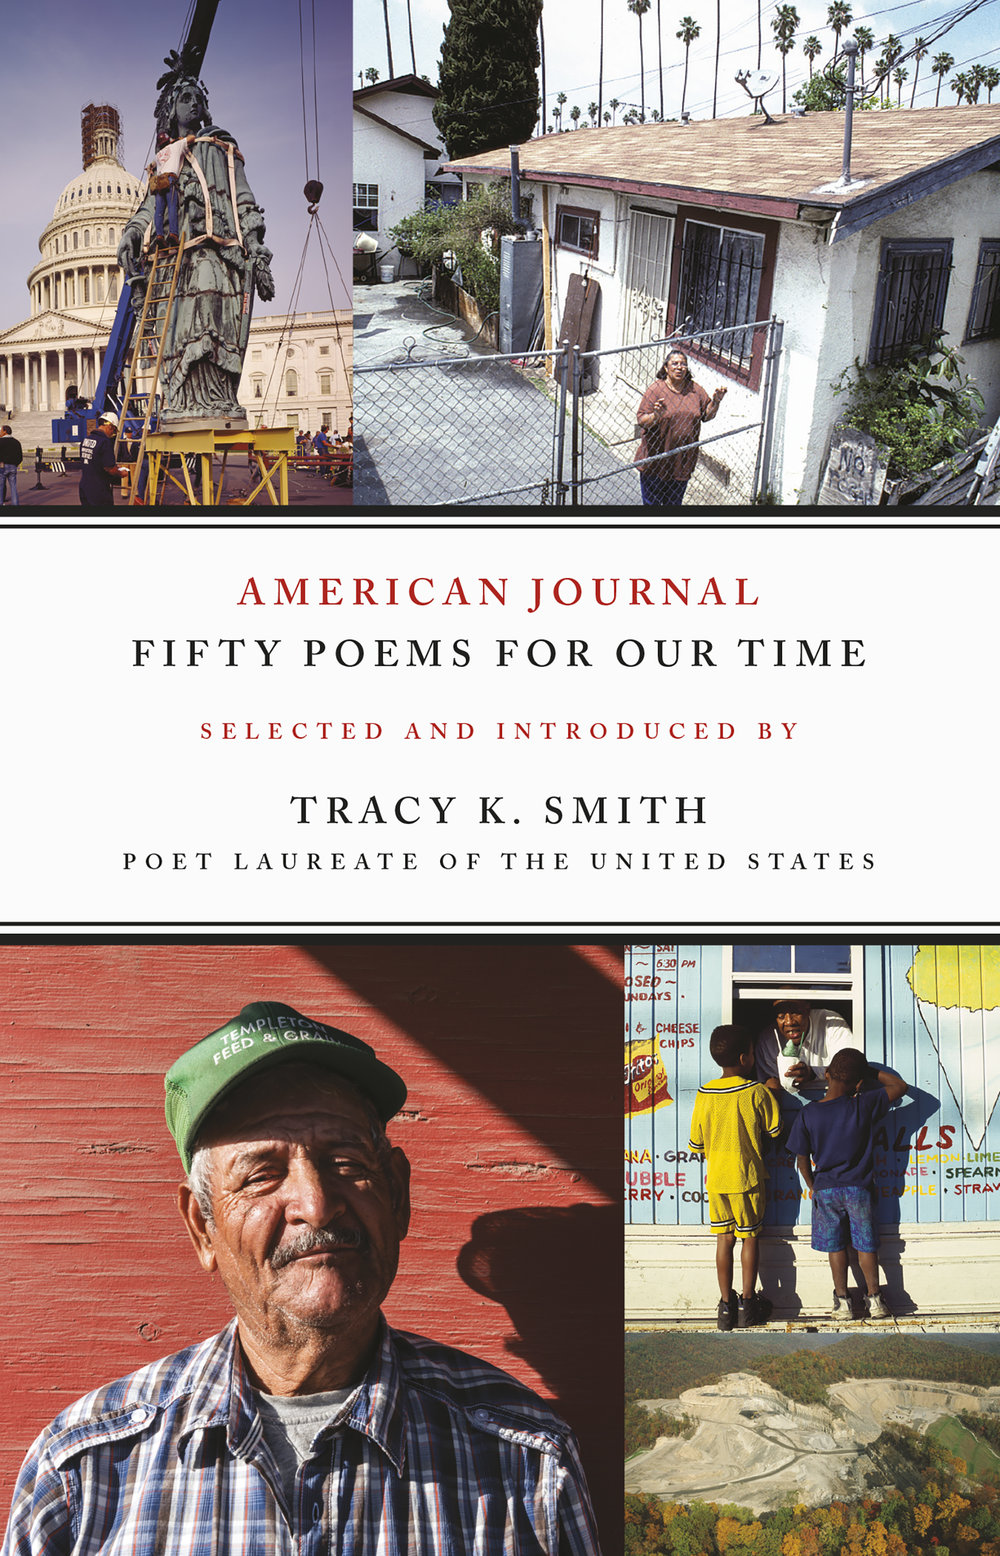 American Journal: Fifty Poems for Our Time  was edited by Tracy K. Smith and released in September from Graywolf Press.